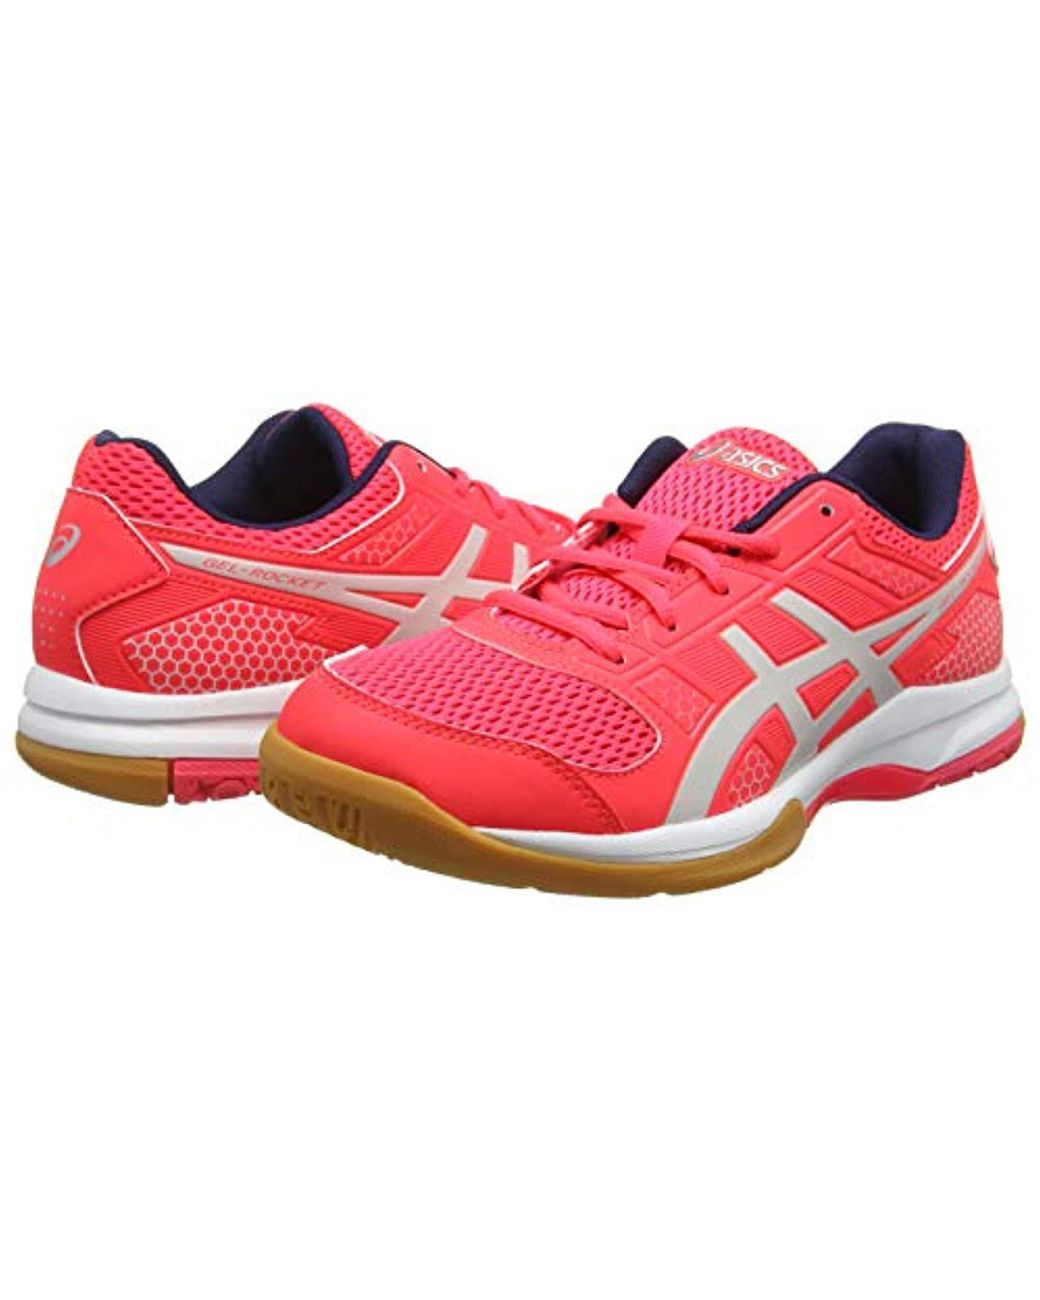 c8ff6628bafc2 Asics Gel-rocket 8 Volleyball Shoes in Pink - Save 34% - Lyst